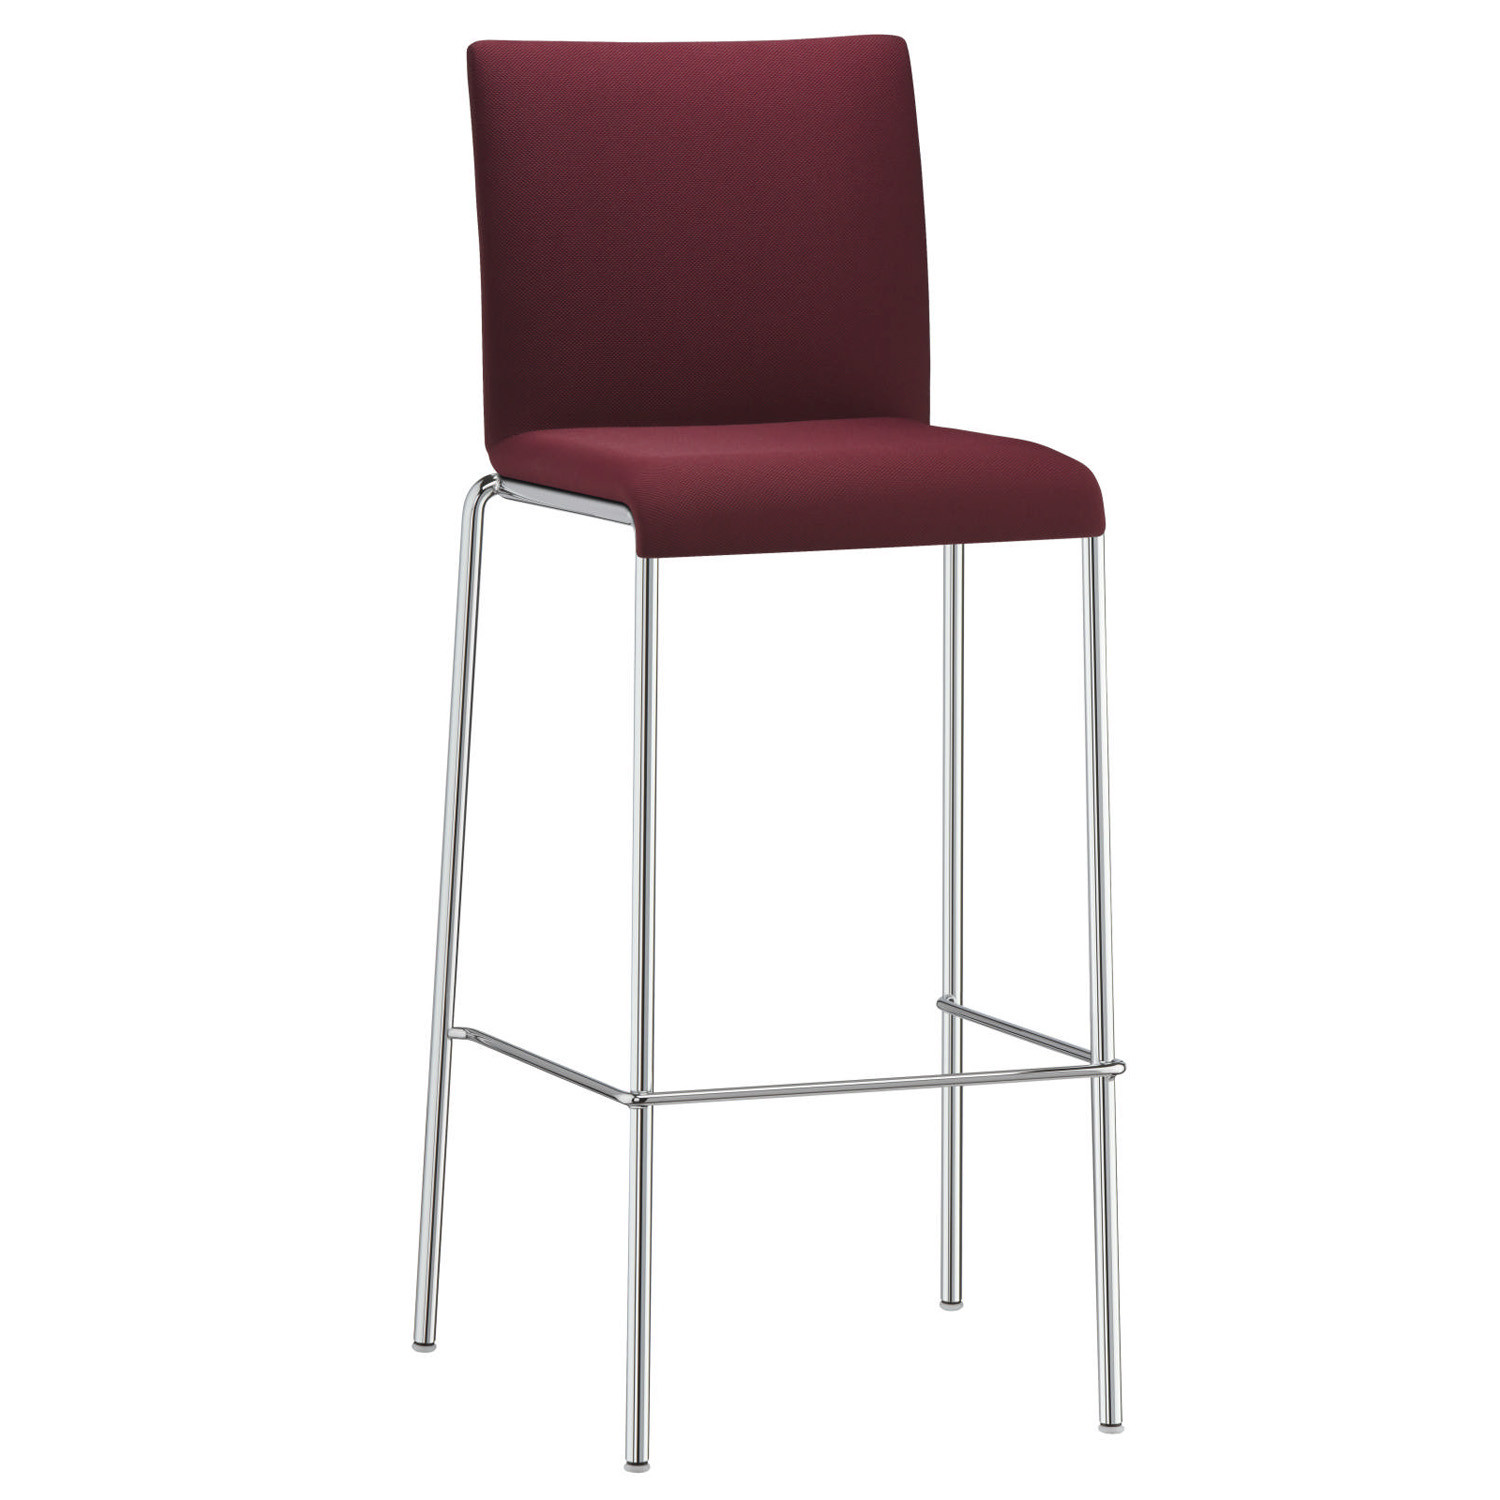 Verona Bar Stool fully upholstered